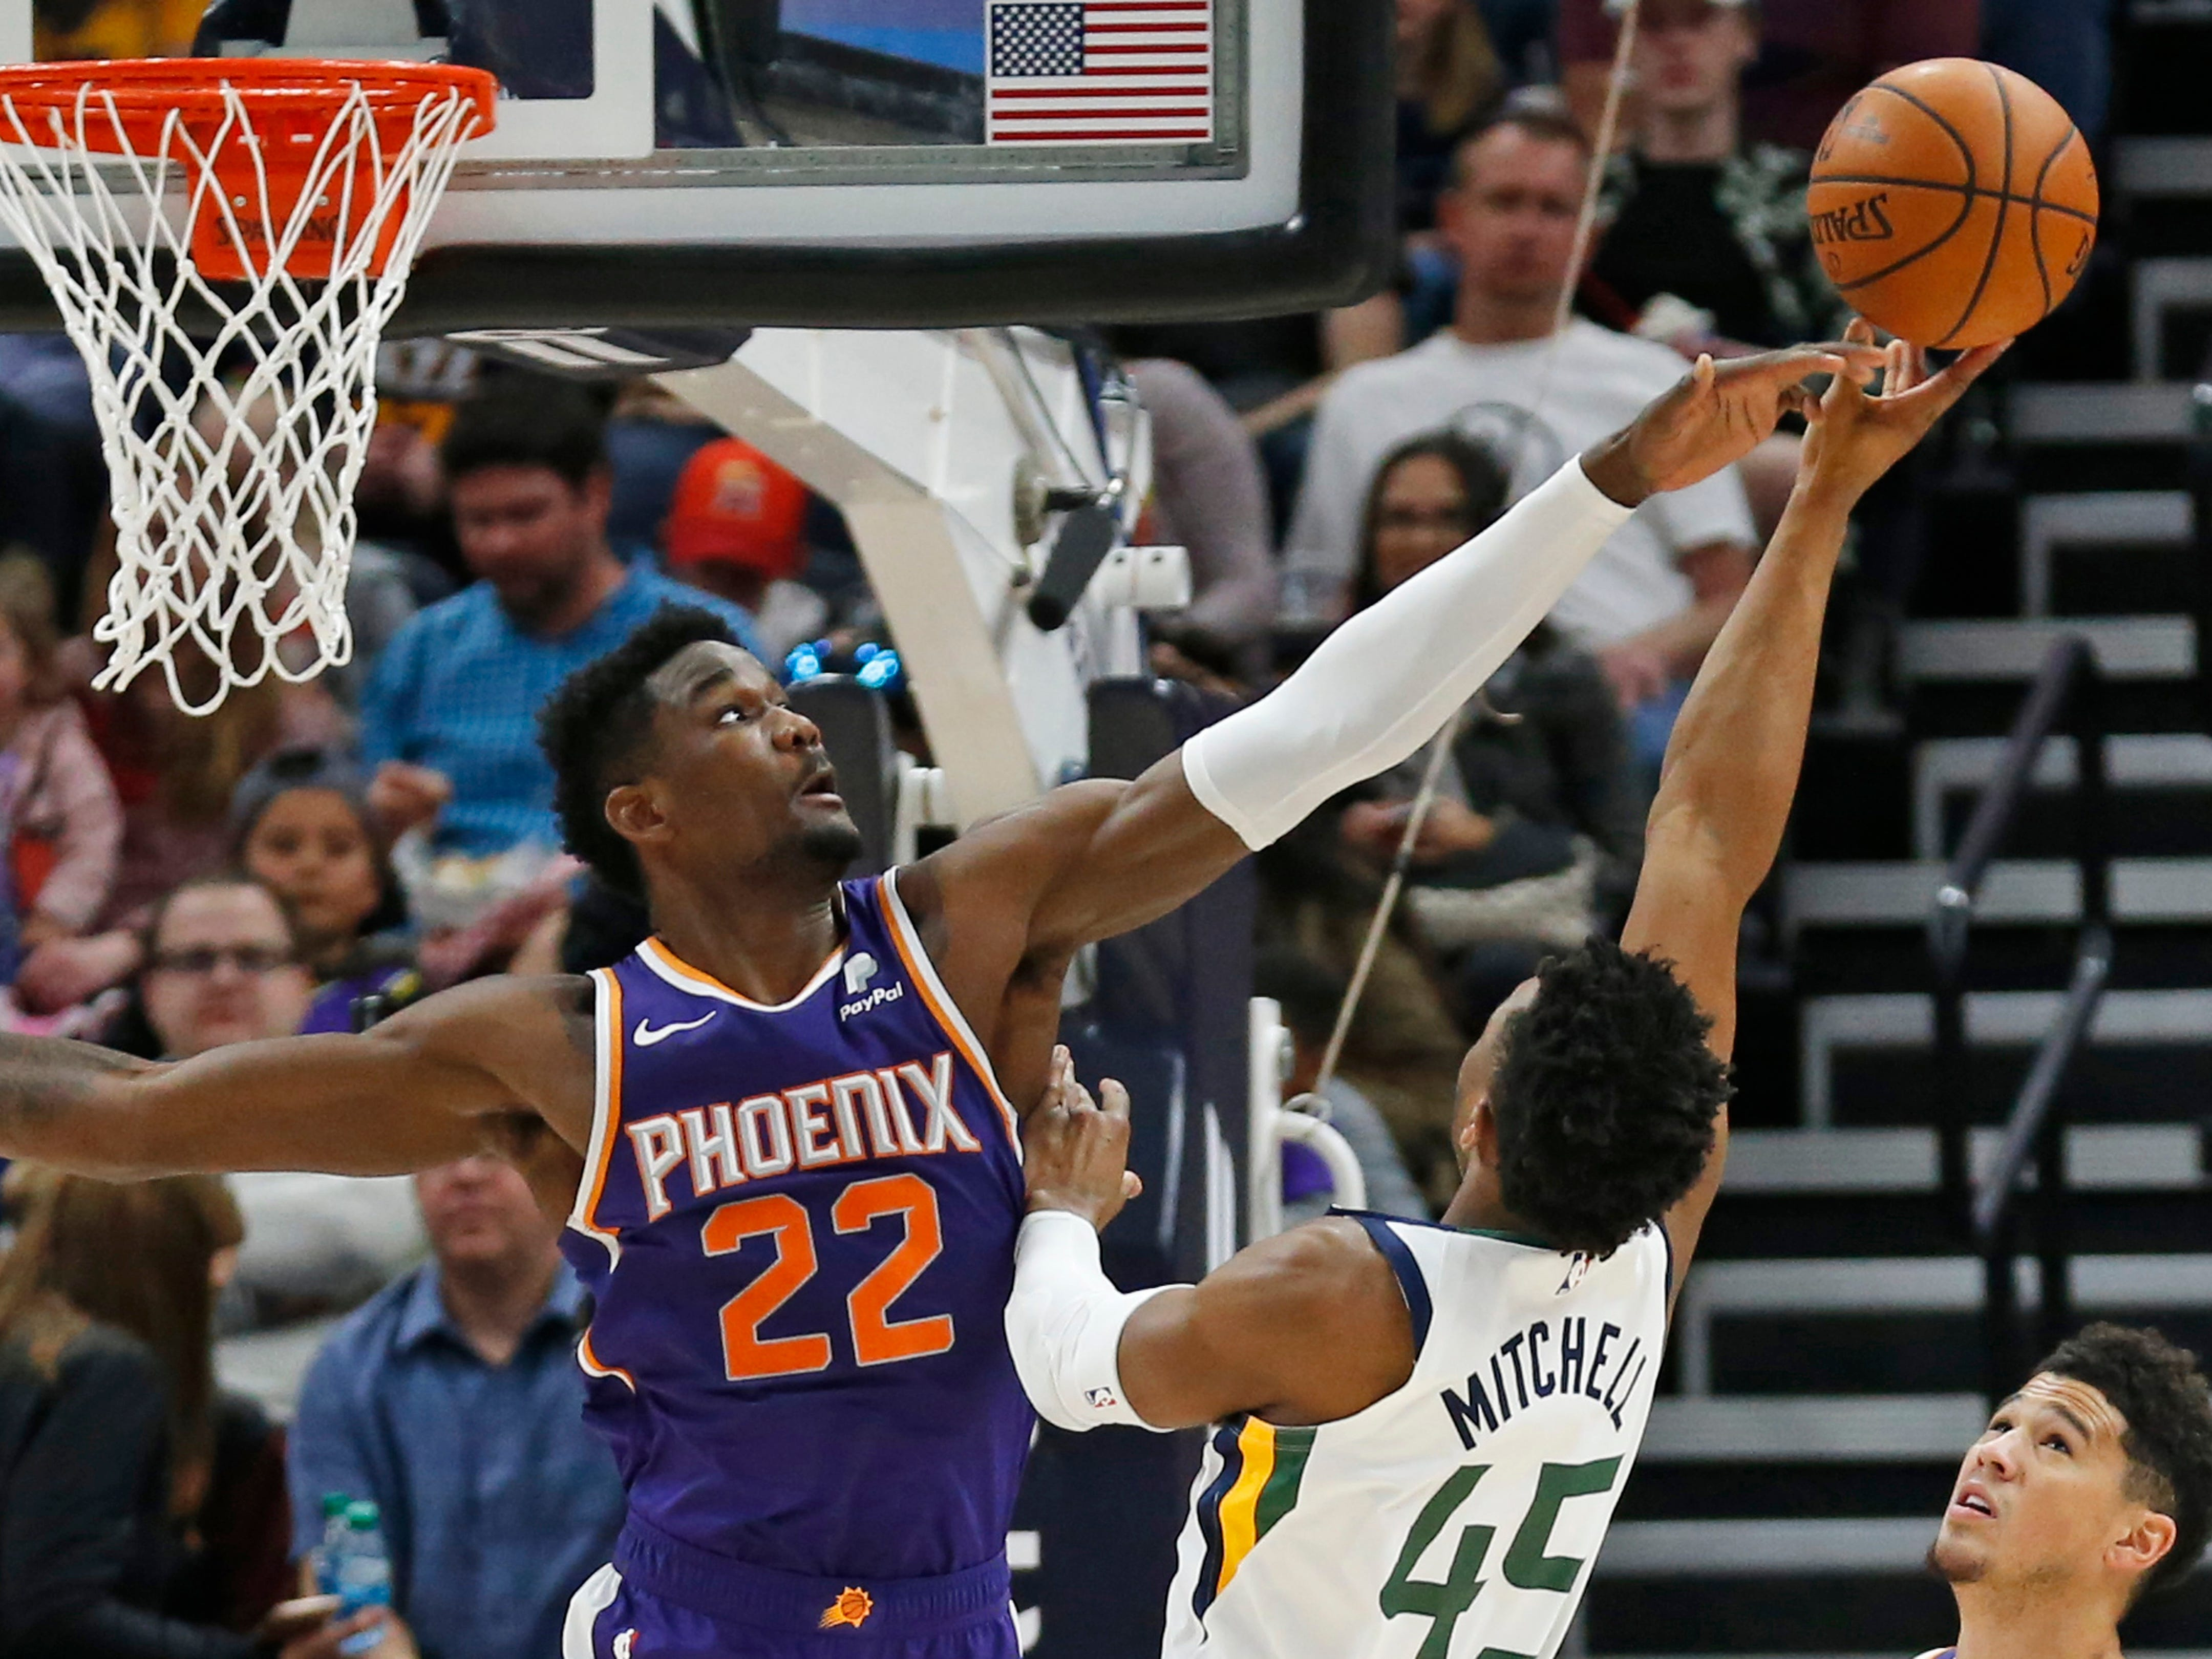 Phoenix Suns center Deandre Ayton (22) defends against Utah Jazz guard Donovan Mitchell (45) during the first half of an NBA basketball game Monday, March 25, 2019, in Salt Lake City.